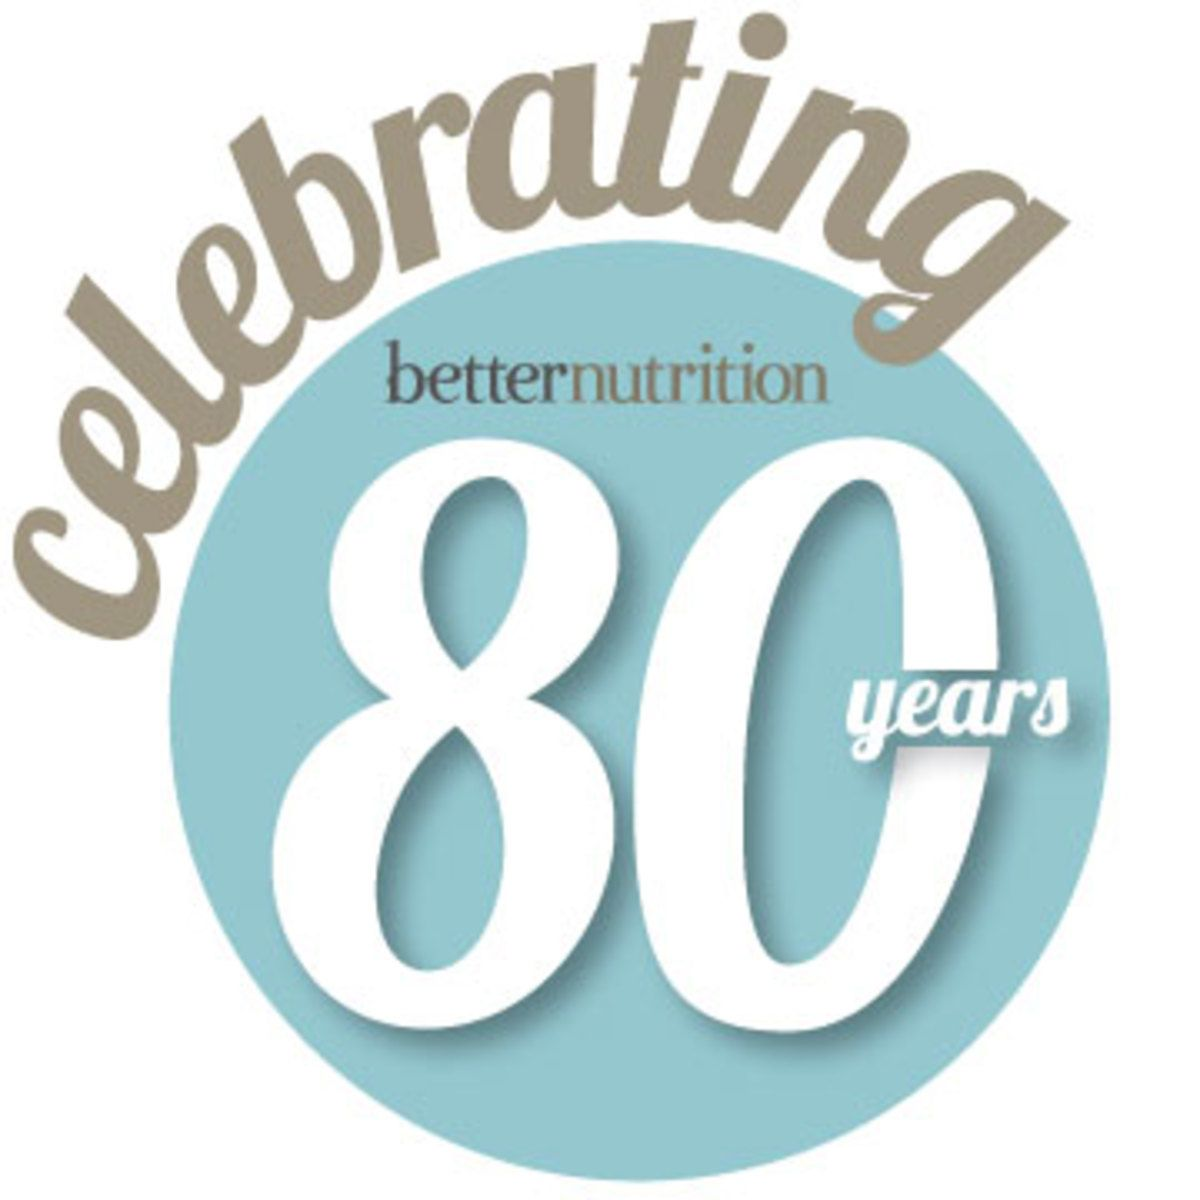 Celebrating better nutrition 80 years with images